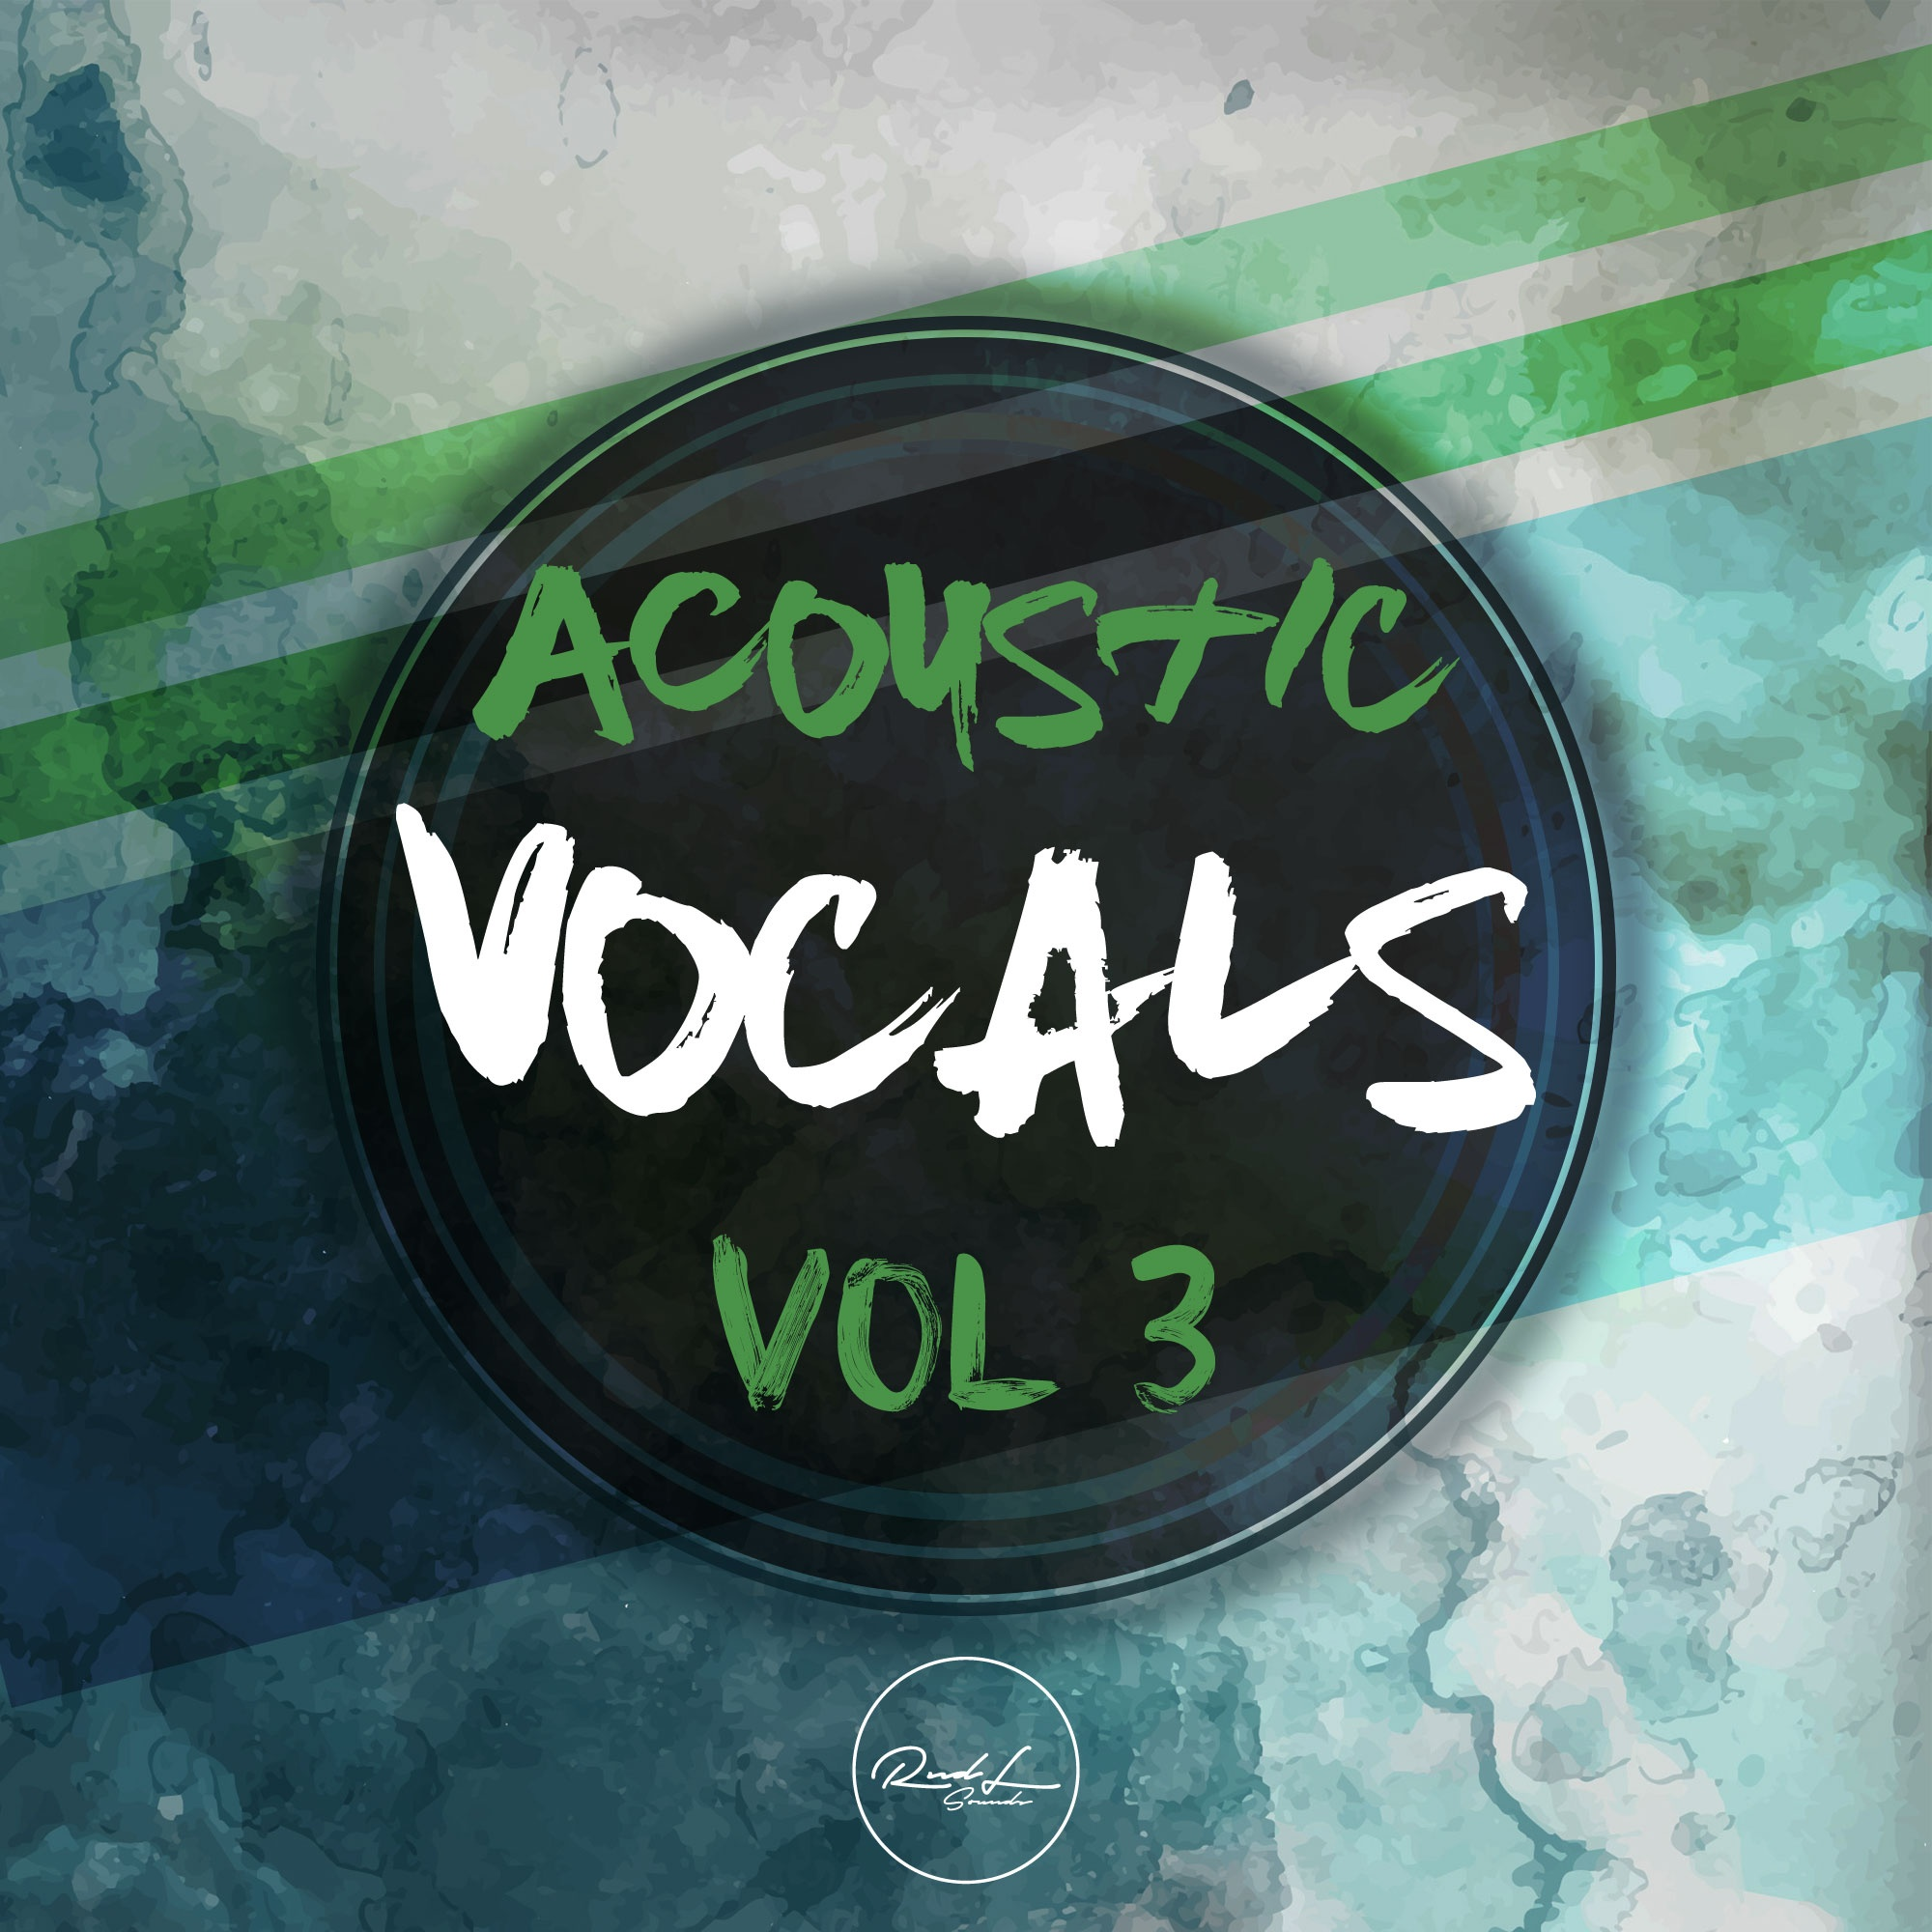 Acoustic Vocals Vol 3